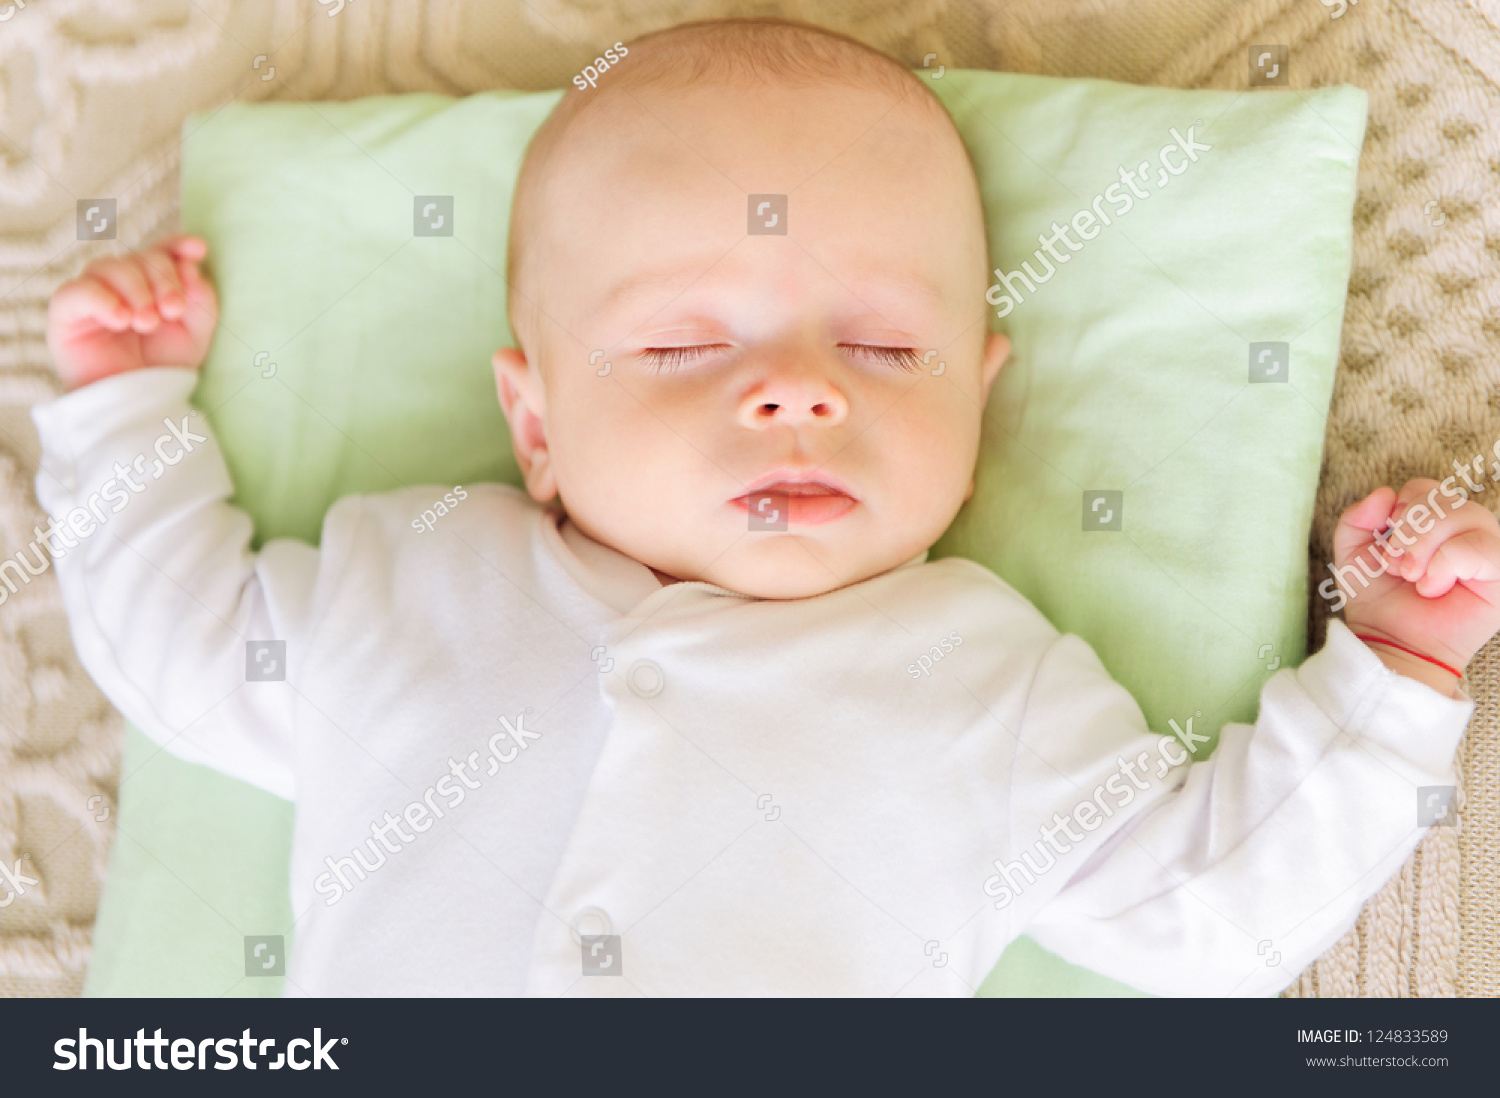 Baby bed and pillow - Cute Newborn Baby Sleeping In Bed On Pillow